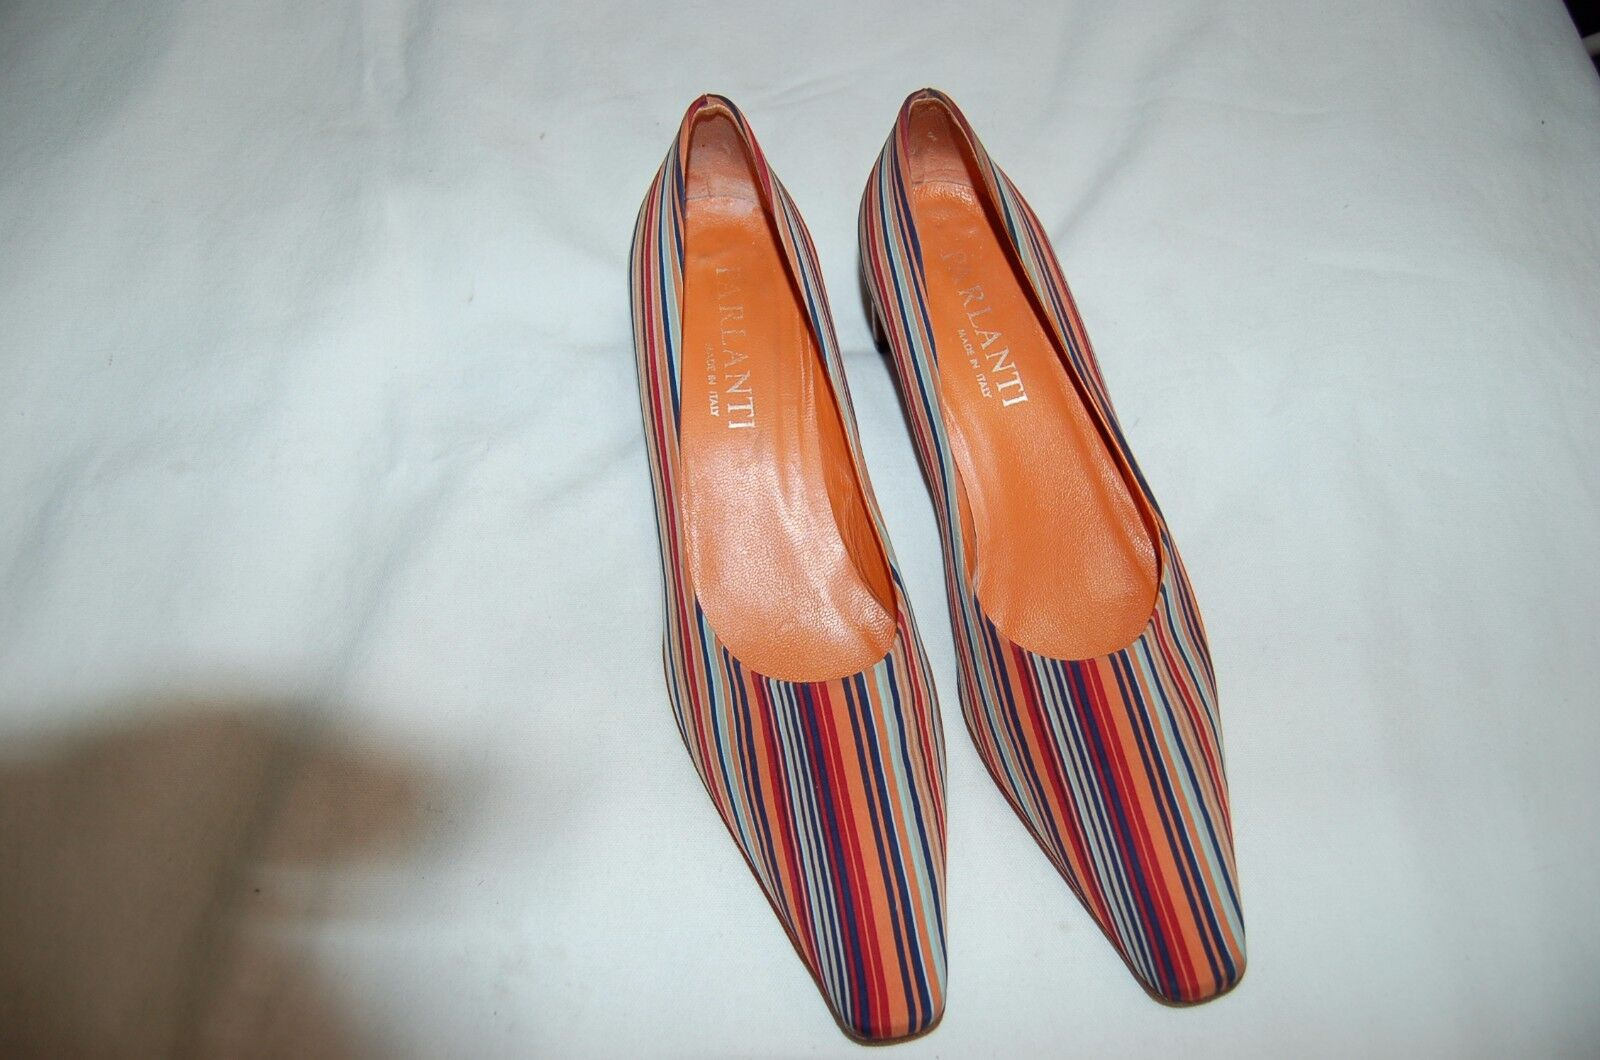 Parlanti Multi-color Satin Heels Shoes Pumps Size Size Pumps 39 Made in Italy aafc84